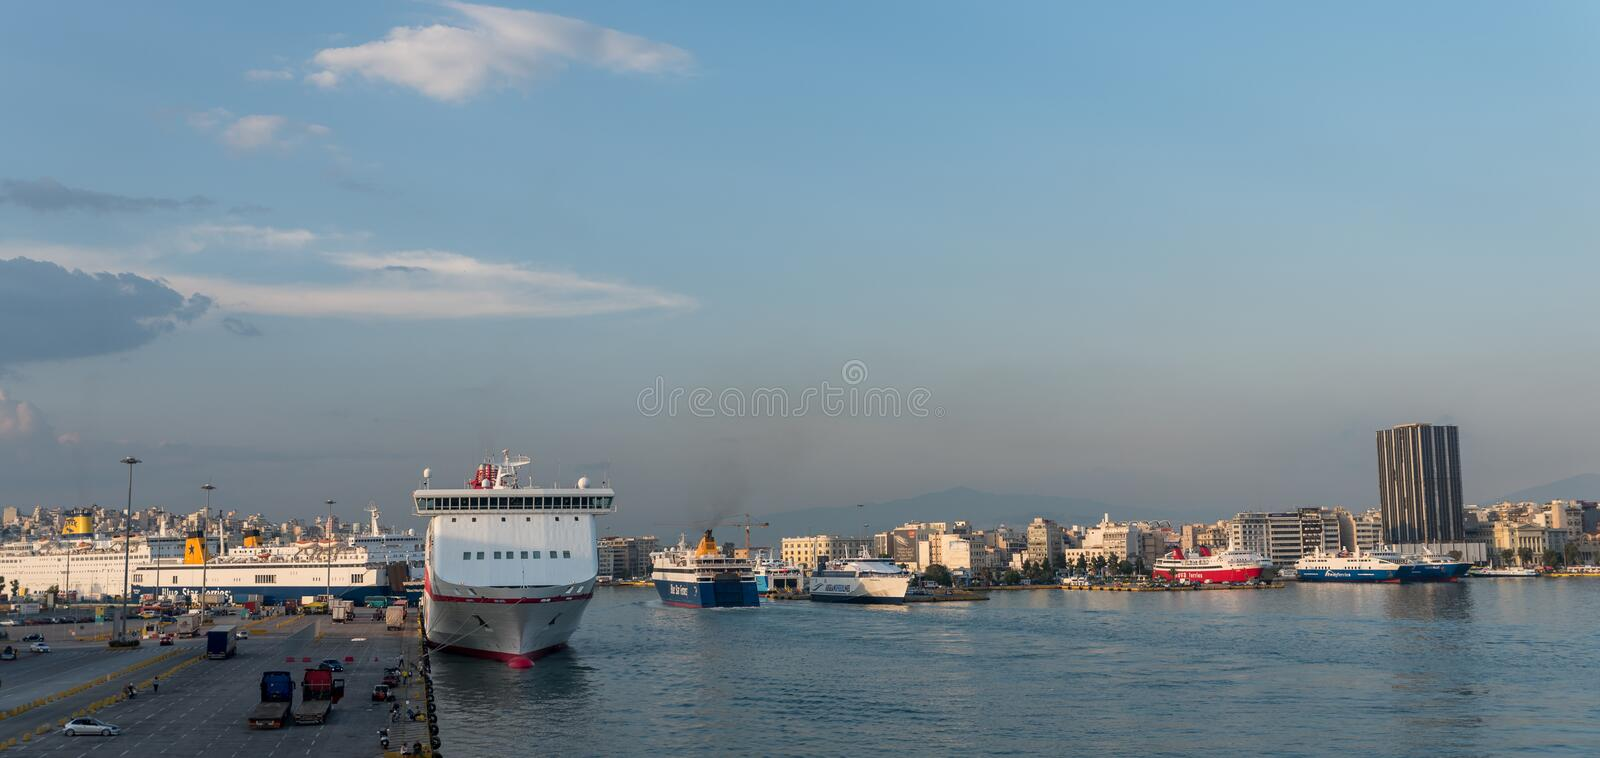 Pireaus Greece/ June 18, 2018: Panaroma of Pireaus Harbor in Greece. Pireaus Greece/ June 18, 2018: Ferries in Pireaus Harbor Greece lined up and ready to depart royalty free stock image